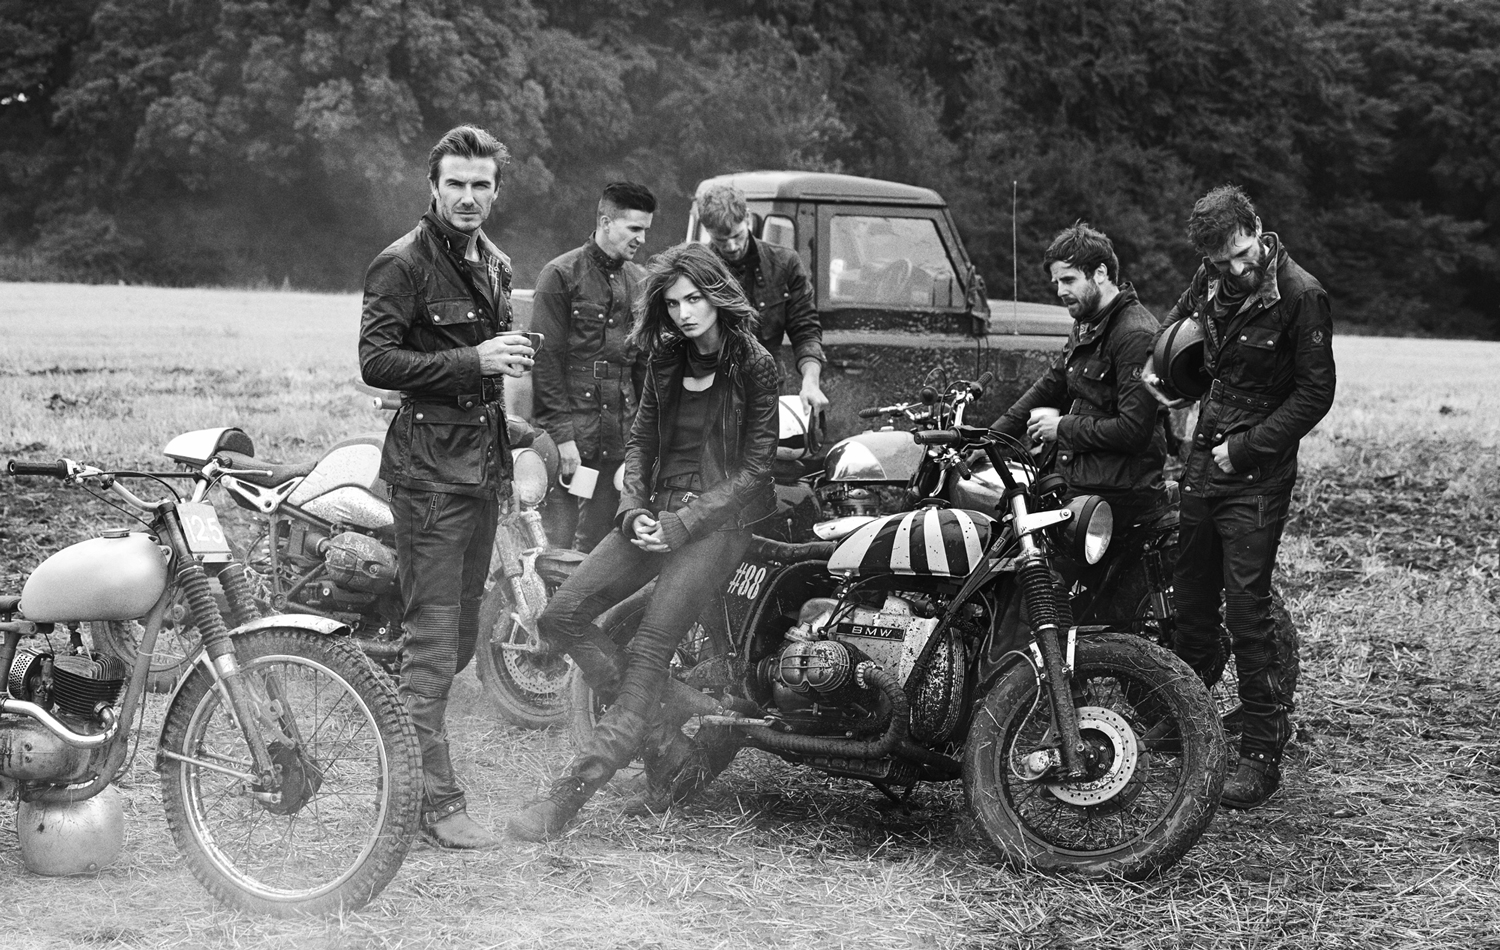 Belstaff - We where commissioned by Belstaff to create content for their marketing and social media channels. We had a load of fun shooting on country roads to in the city and was a fun project to work on!